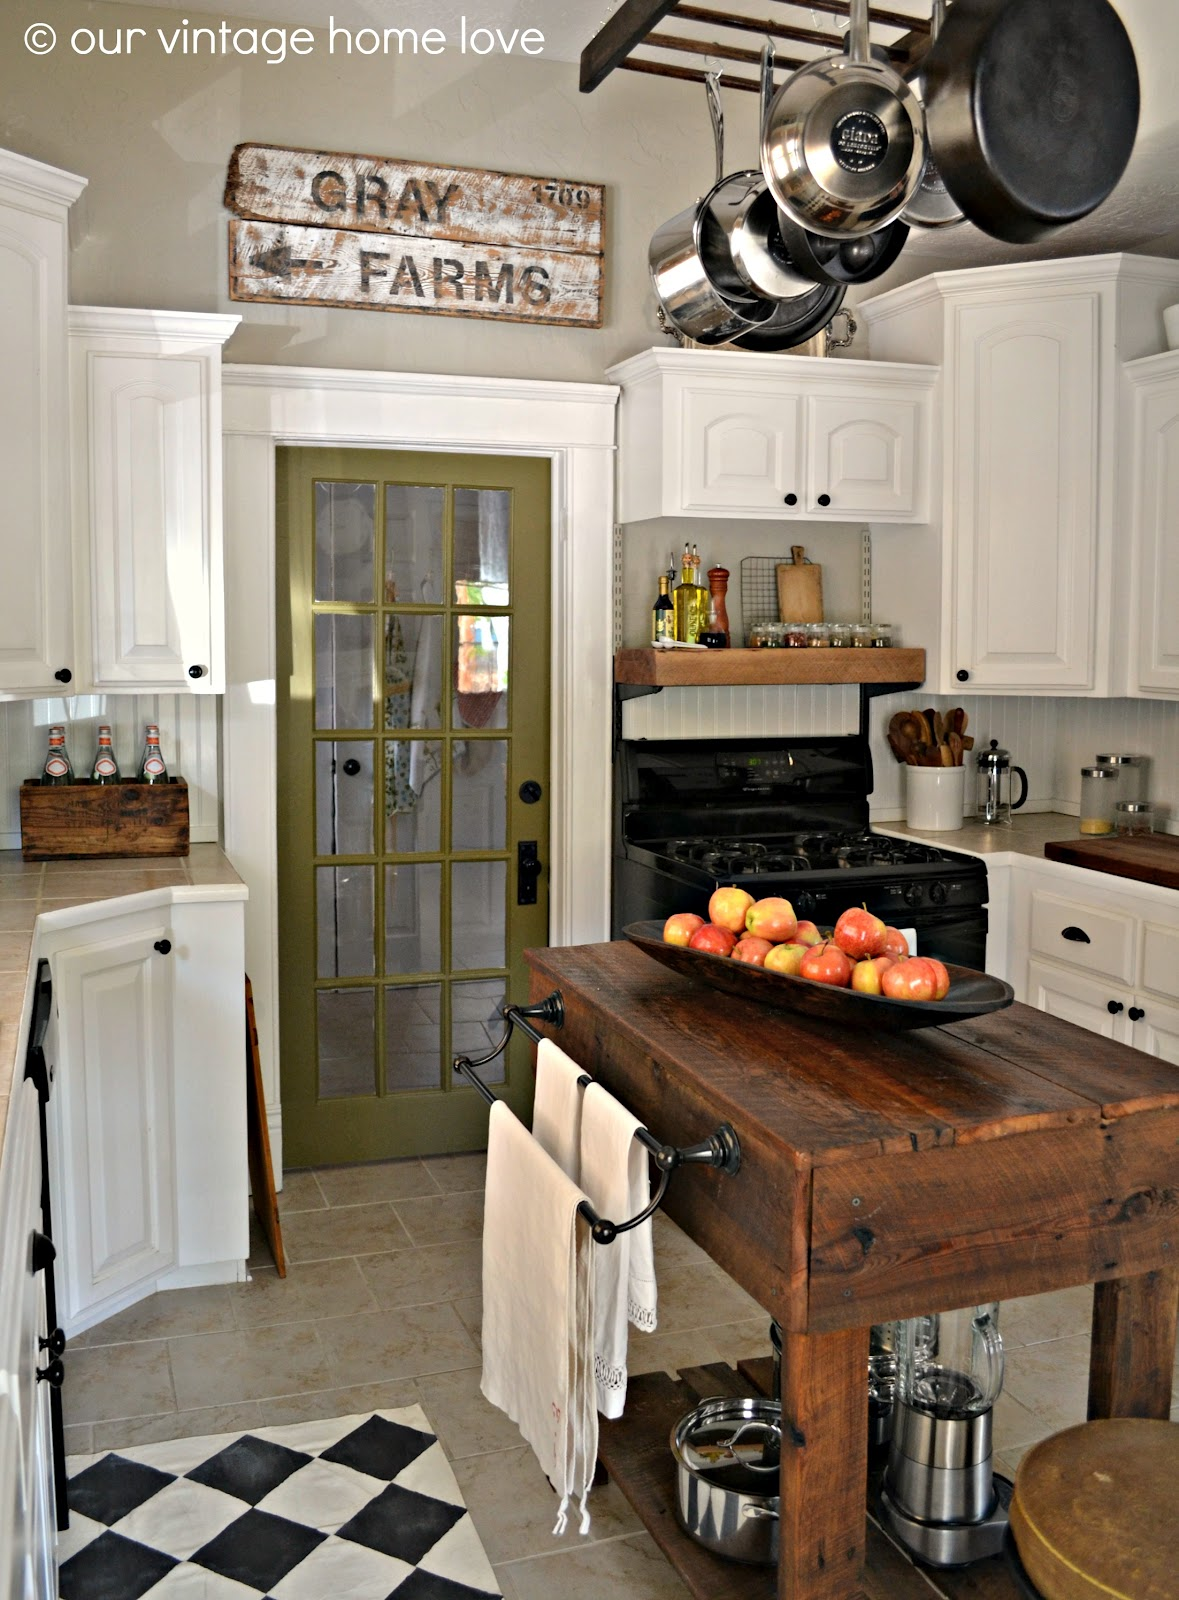 23 Best Rustic Country Kitchen Design Ideas and ... on Farmhouse Rustic Kitchen Ideas  id=59404